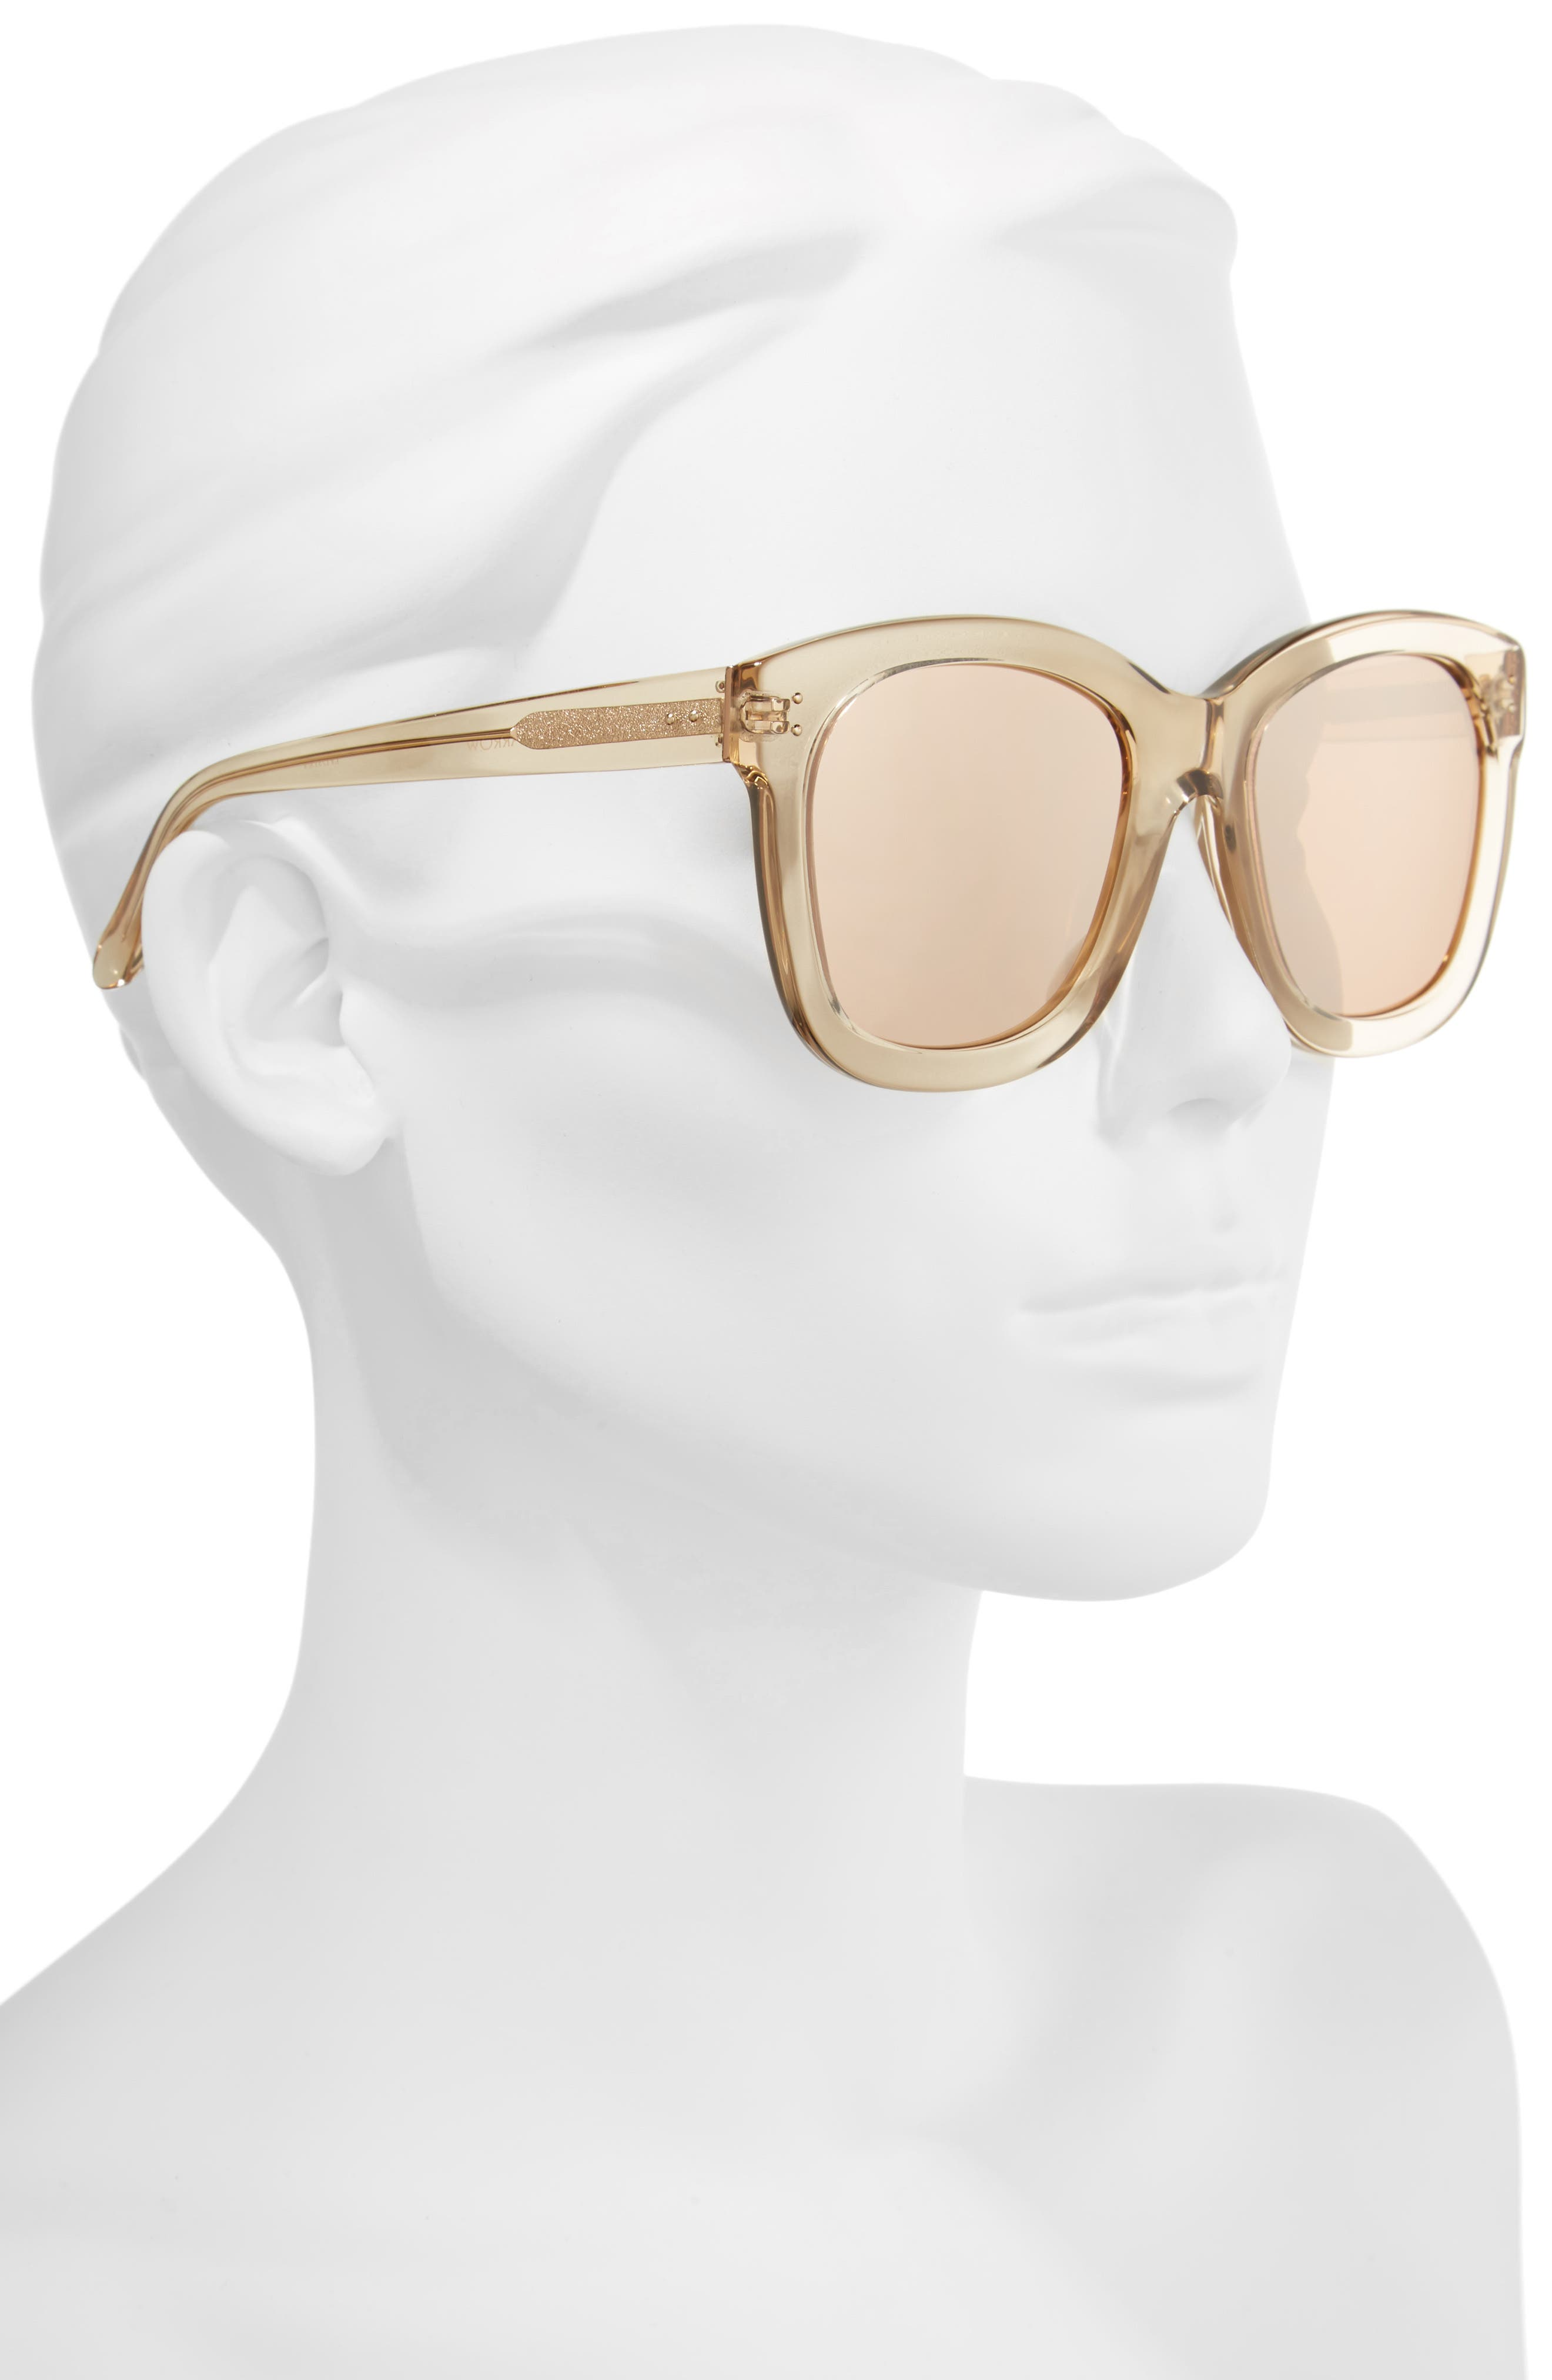 56mm Mirrored Sunglasses,                             Alternate thumbnail 2, color,                             Ash/ Rose Gold